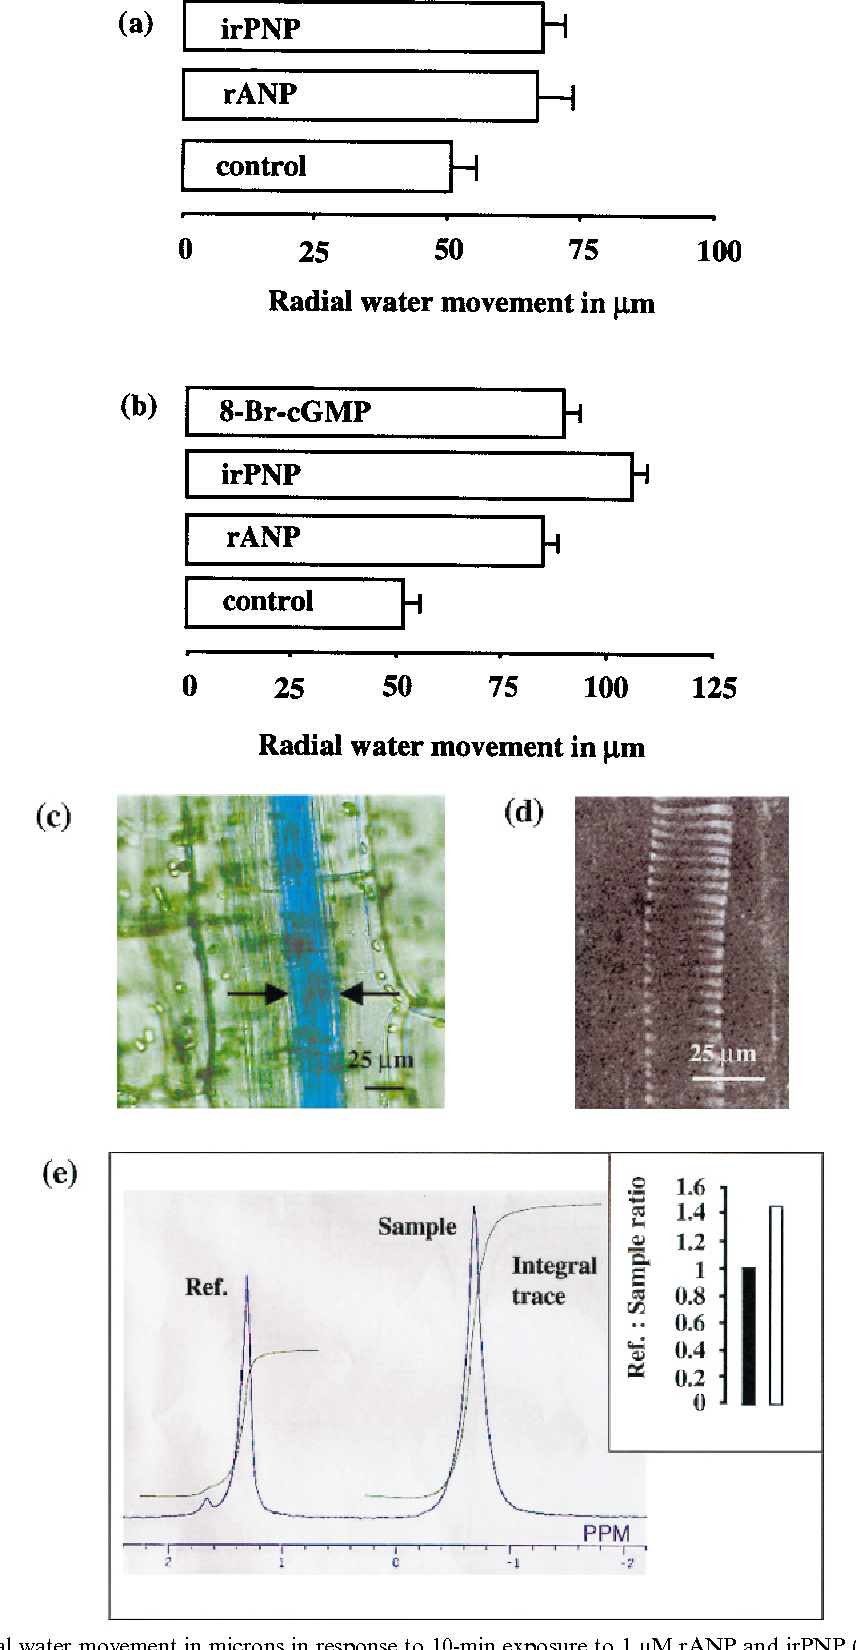 Figure 1. Mean lateral water movement in microns in response to 10-min exposure to 1 mM rANP and irPNP (100 ng total protein/100 mL) (a). In (b) the exposure time was increased from 10 min to 30 min, and a treatment with 100 nM 8-Br-cGMP was included. Each bar represents the mean of ]12 measurements per shoot segment, and the error bars show standard errors (SE). An example of a (0.02% w/v) brilliant blue-carrying cell (c) is optically sectioned with confocal laser scanning microscope (excitation: 488 nm) to reveal typical helical wall thickenings of a xylem cell (d). (e) shows a 2H NMR trace; the left peak represents the signal from the internal standard, and the right peak represents the sample. The inset compares mean ratio between internal reference and controls ( ) with mean ratios between internal reference and 1 mM rANP treatments ( ) (n=9).